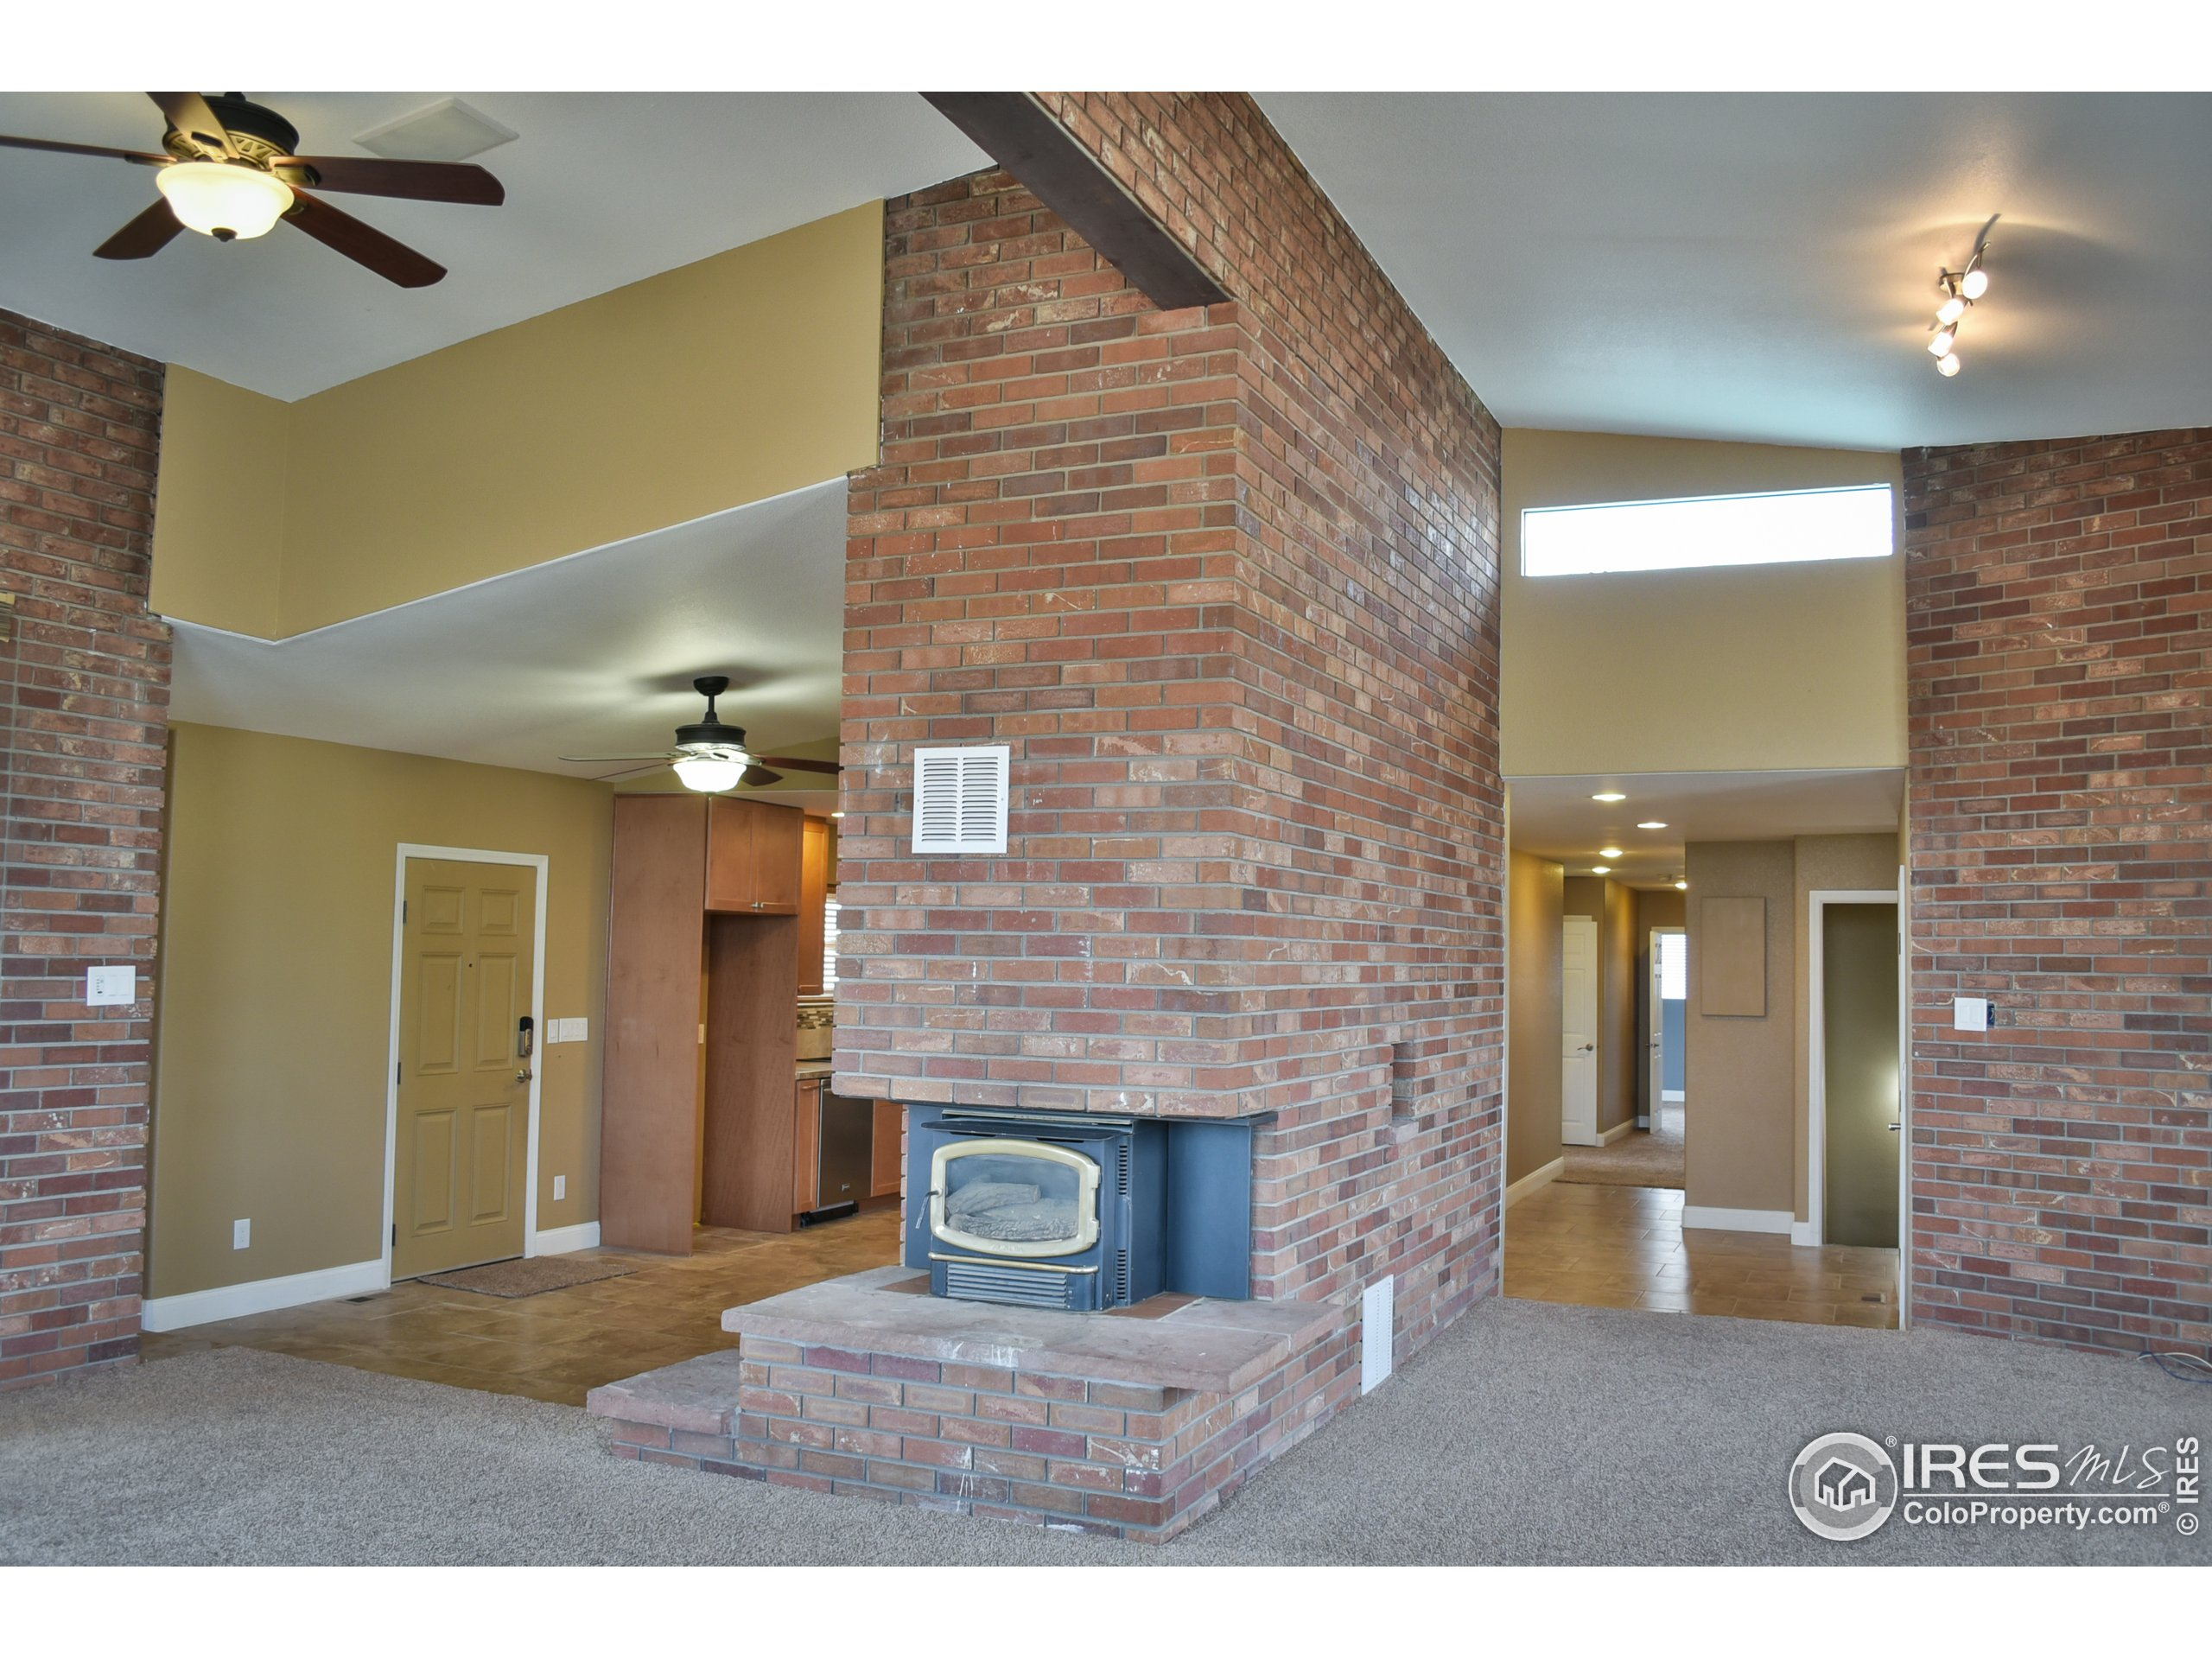 Great Room with 12 foot ceilings at the peak.